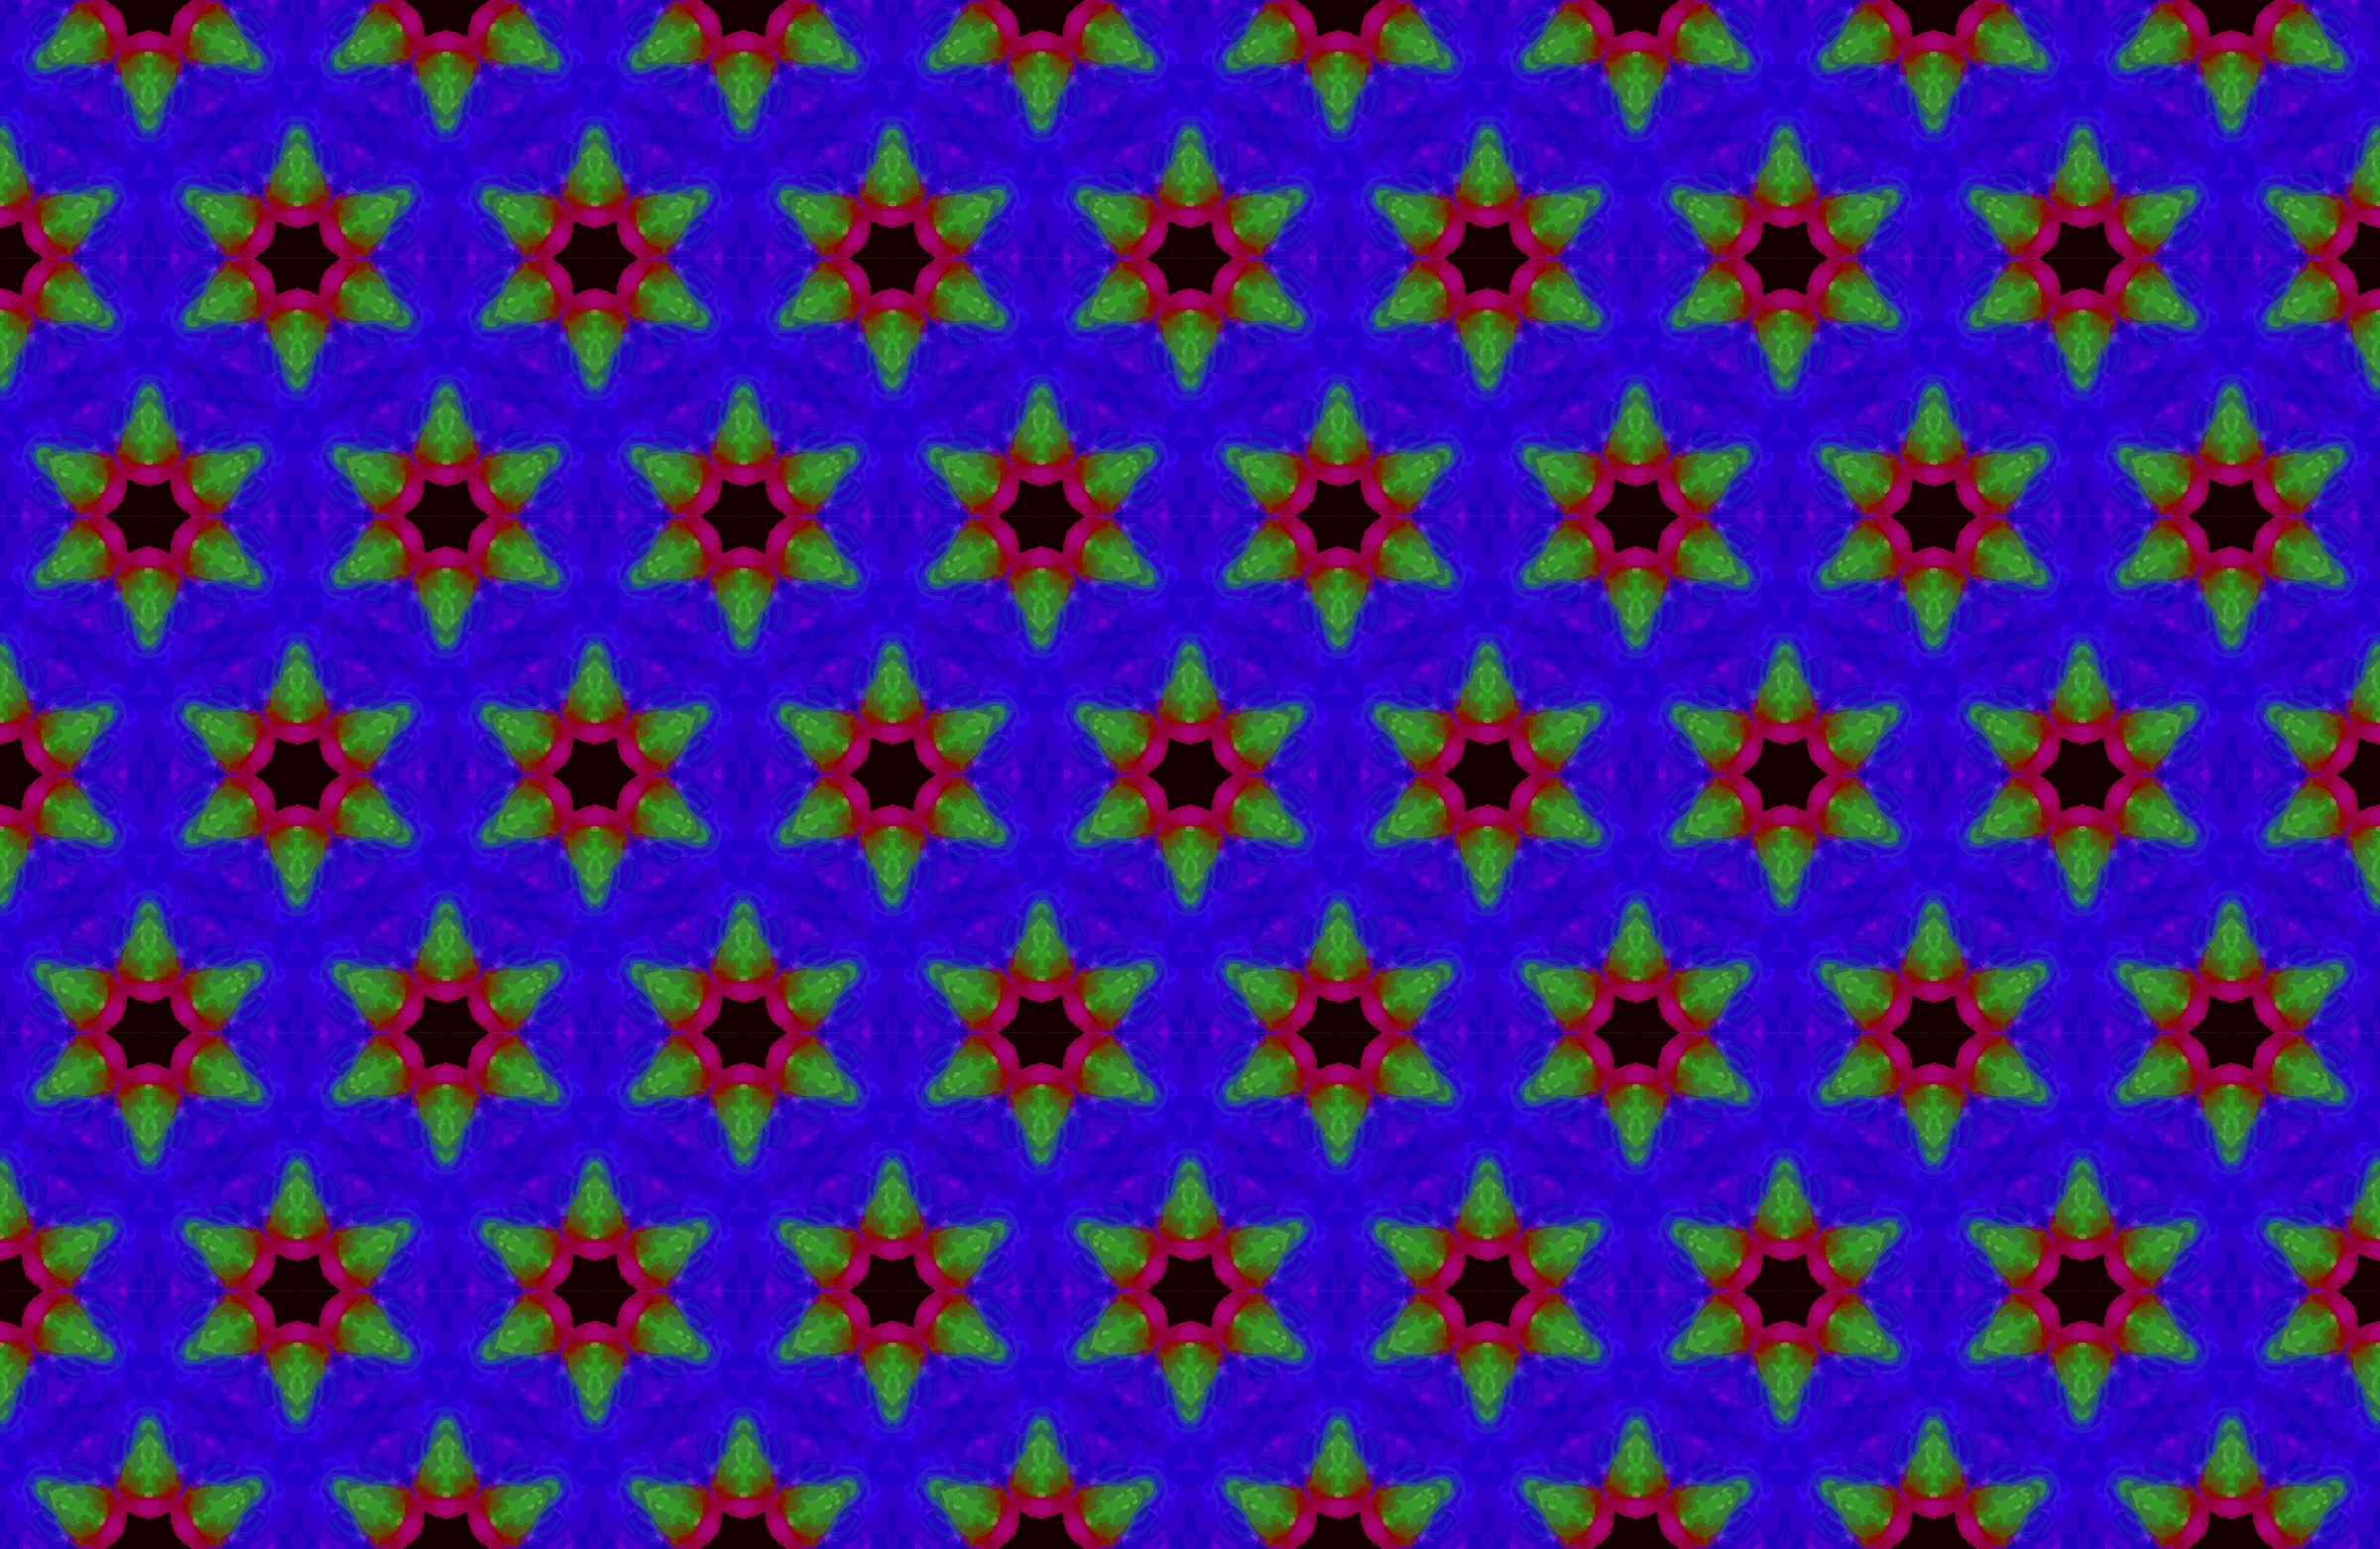 Background pattern 89 (colour 3) by Firkin